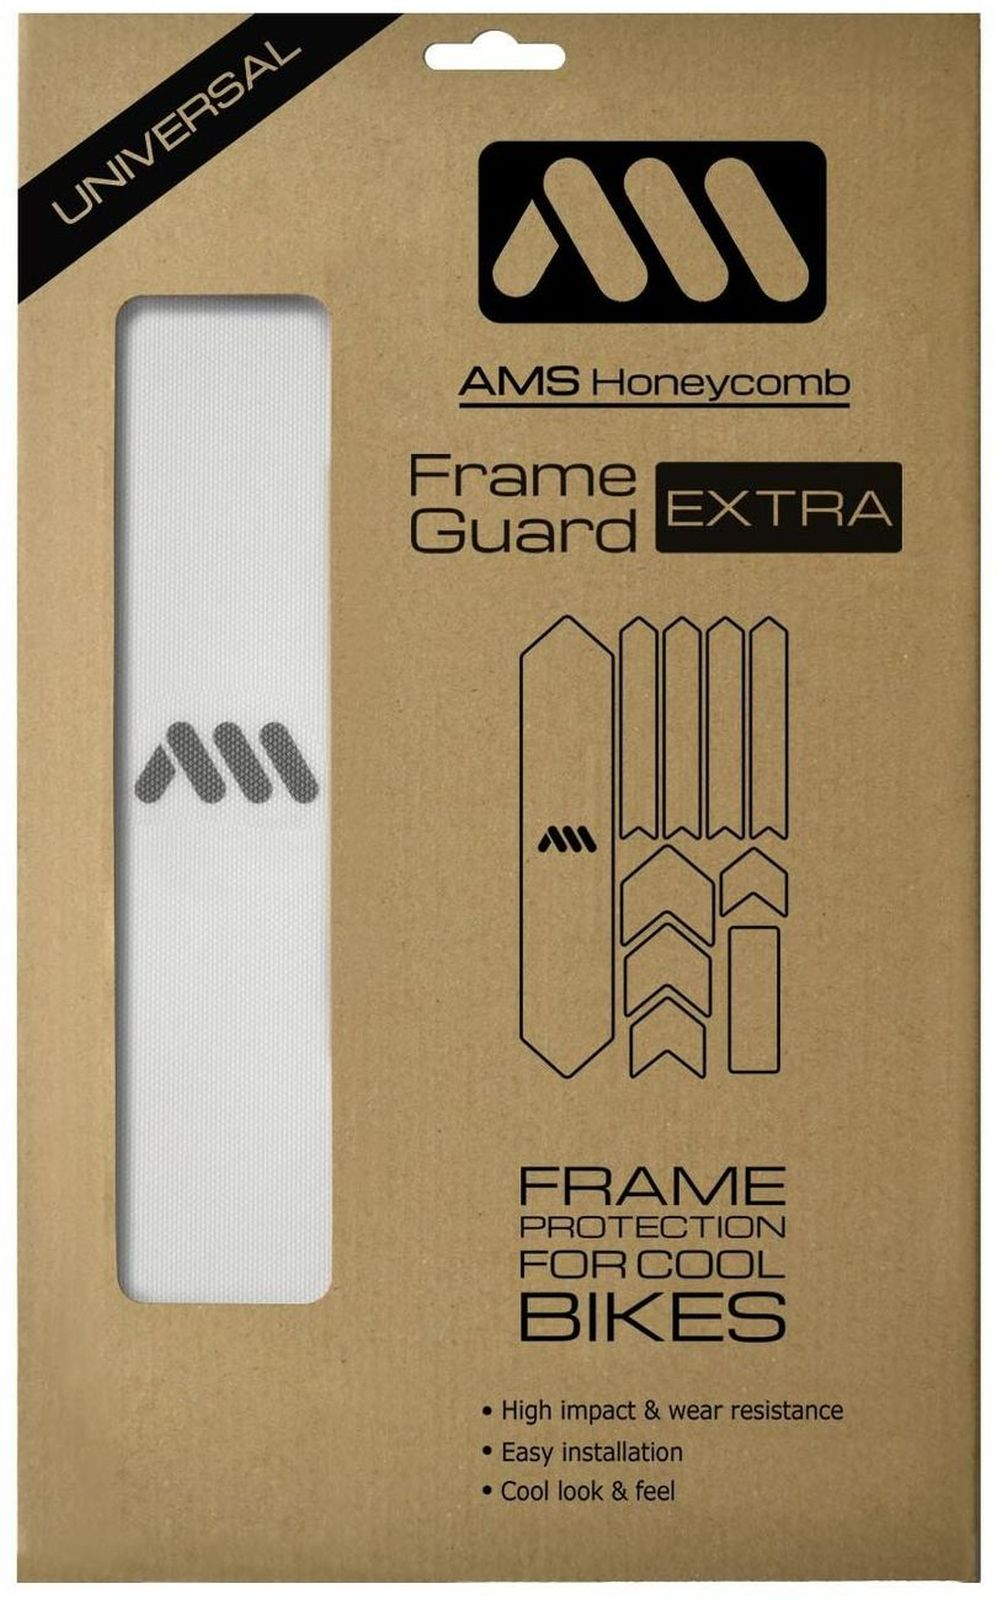 AMS Honeycomb Frame Guard Extra - clear uni